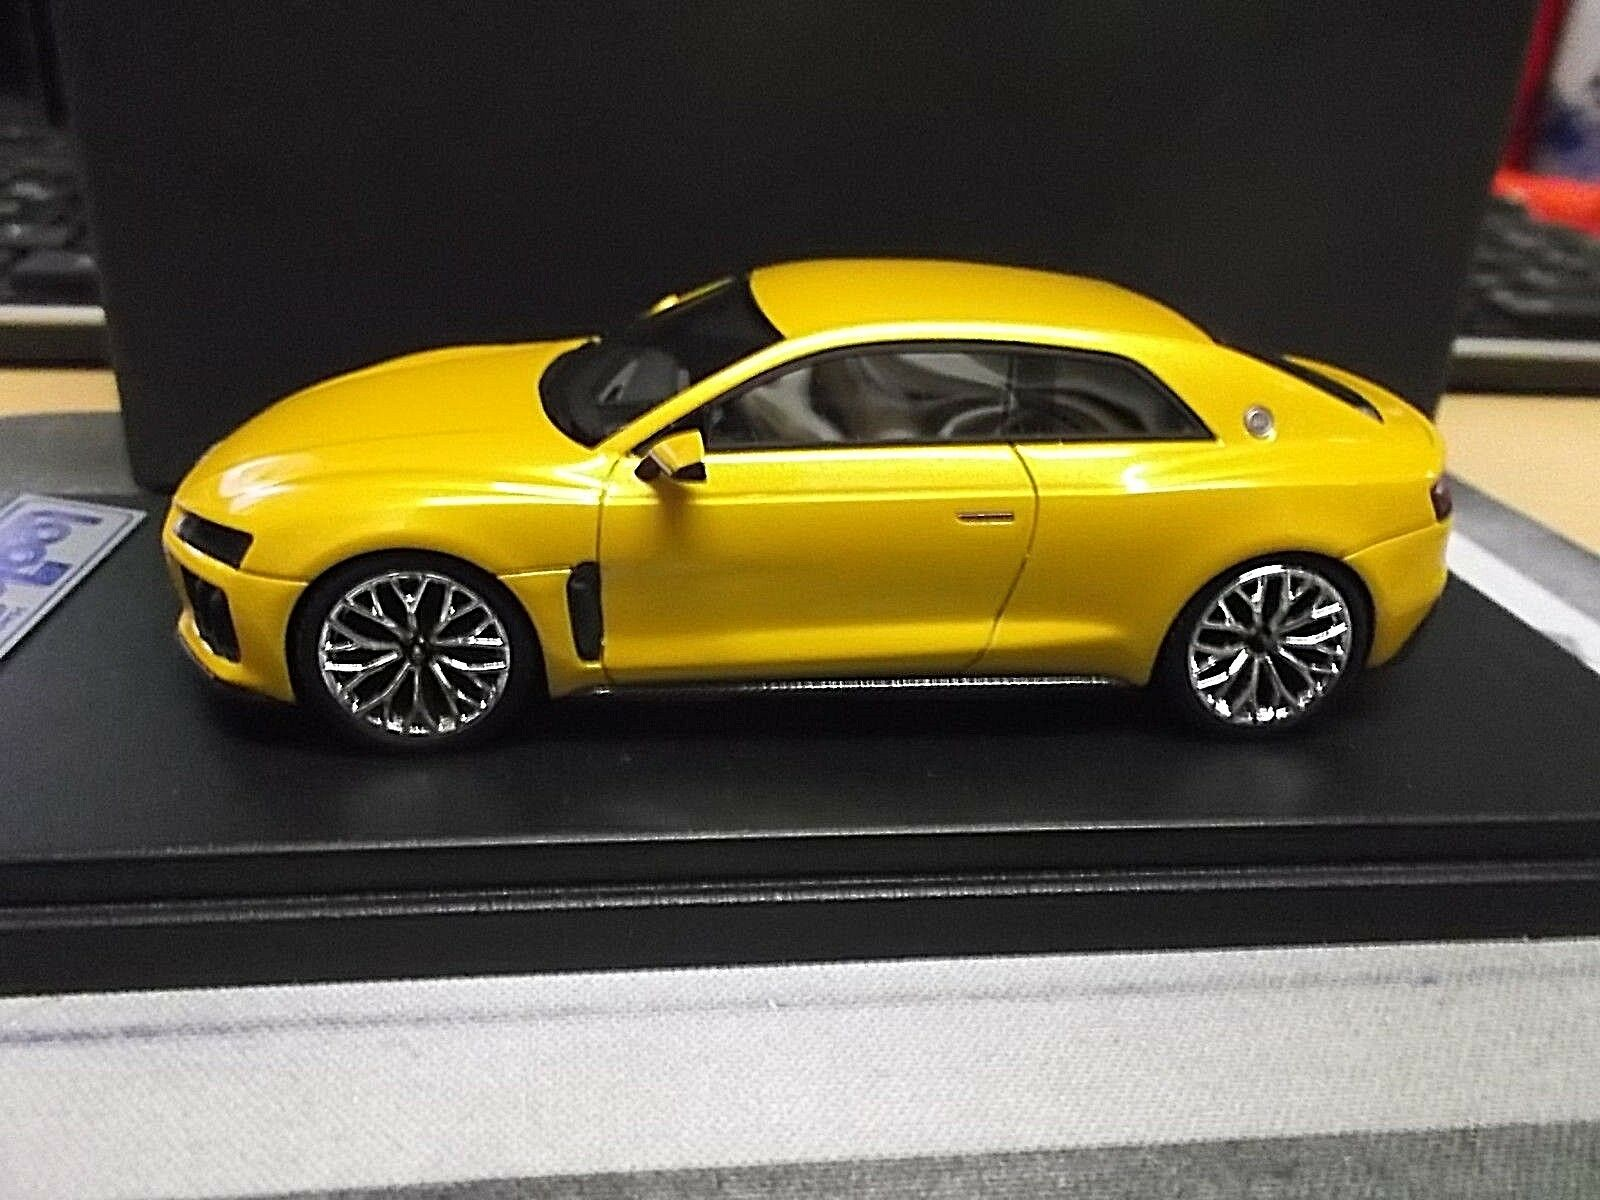 Audi Sport Quattro Concept 2013 ΑΙΑ Frankfurt Yell LookSmart resin lim 1 99 1 43